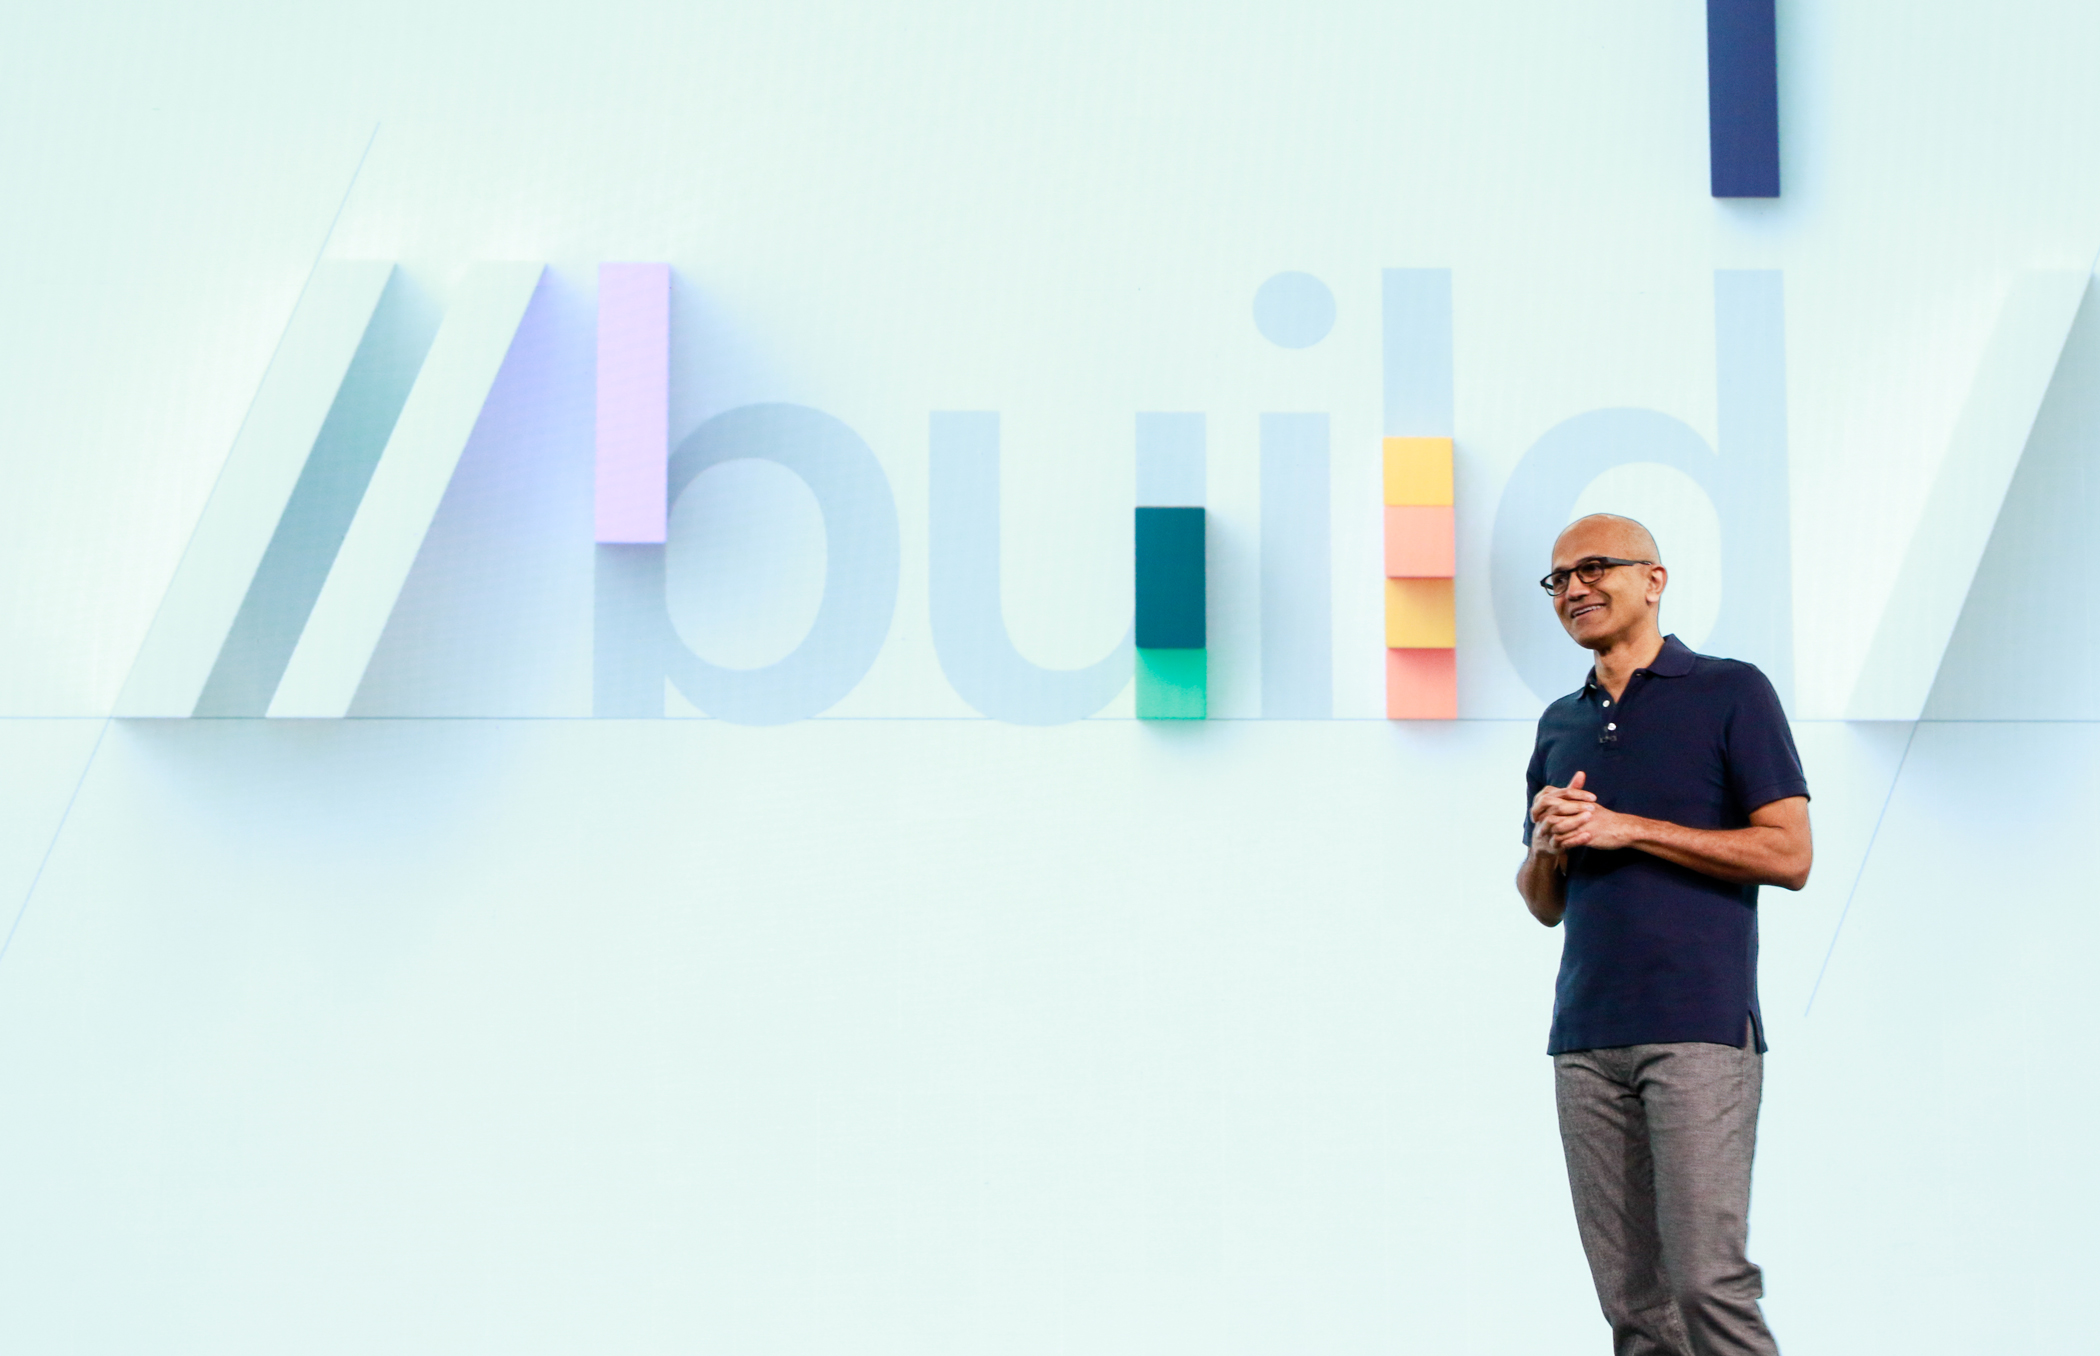 6 reasons Microsoft has become the go-to for machine learning,   including the latest tools announced at Microsoft Build 2019